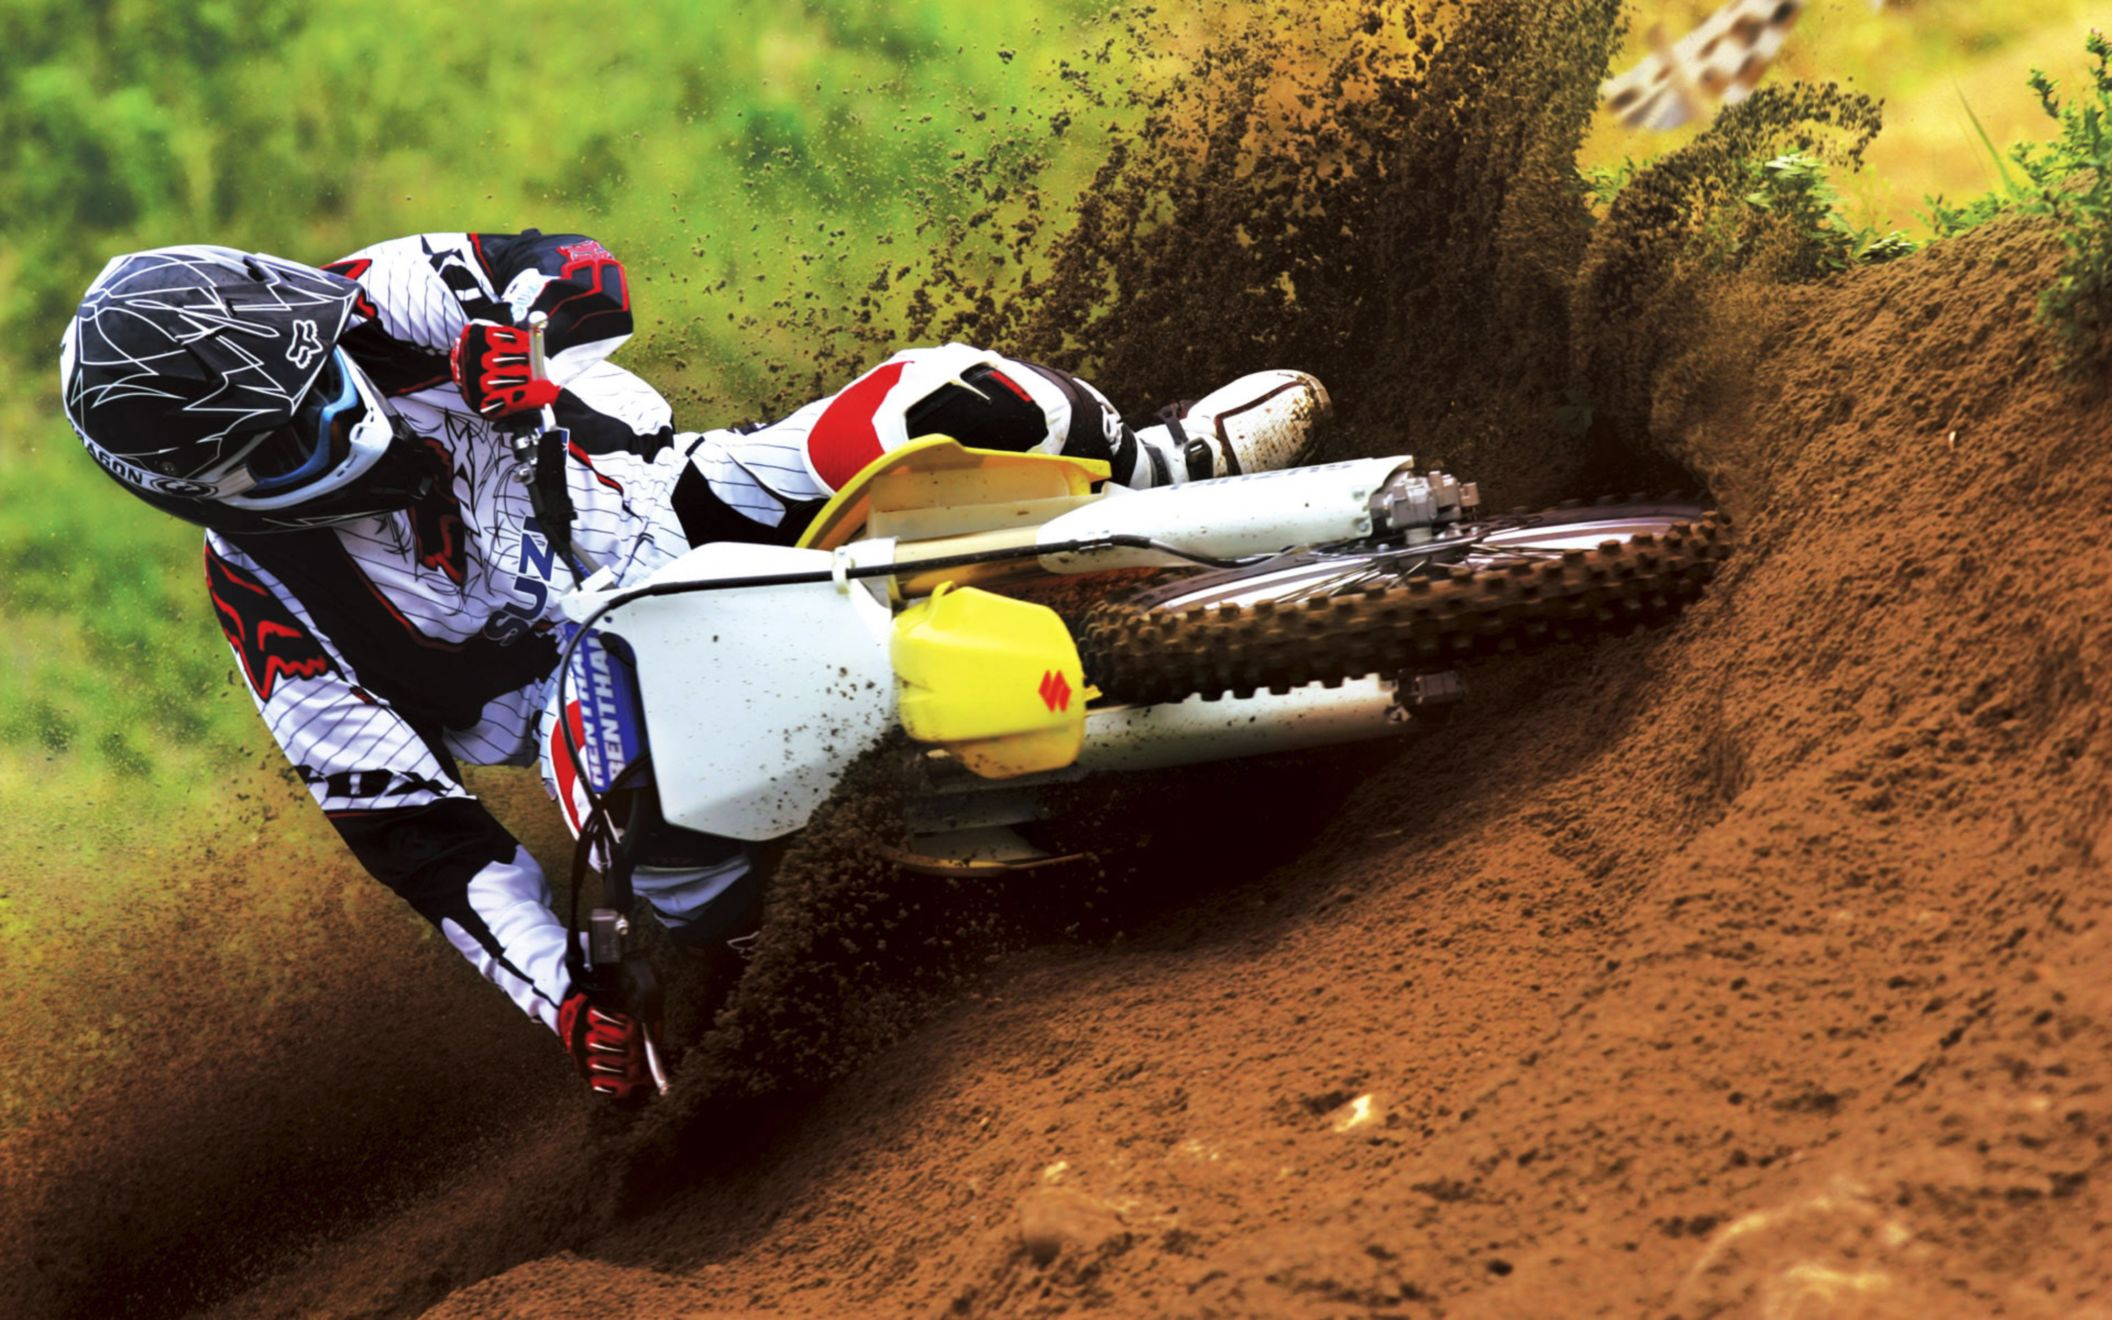 Download free HD Suzuki Motocross Bike Race Wide Wallpaper, image